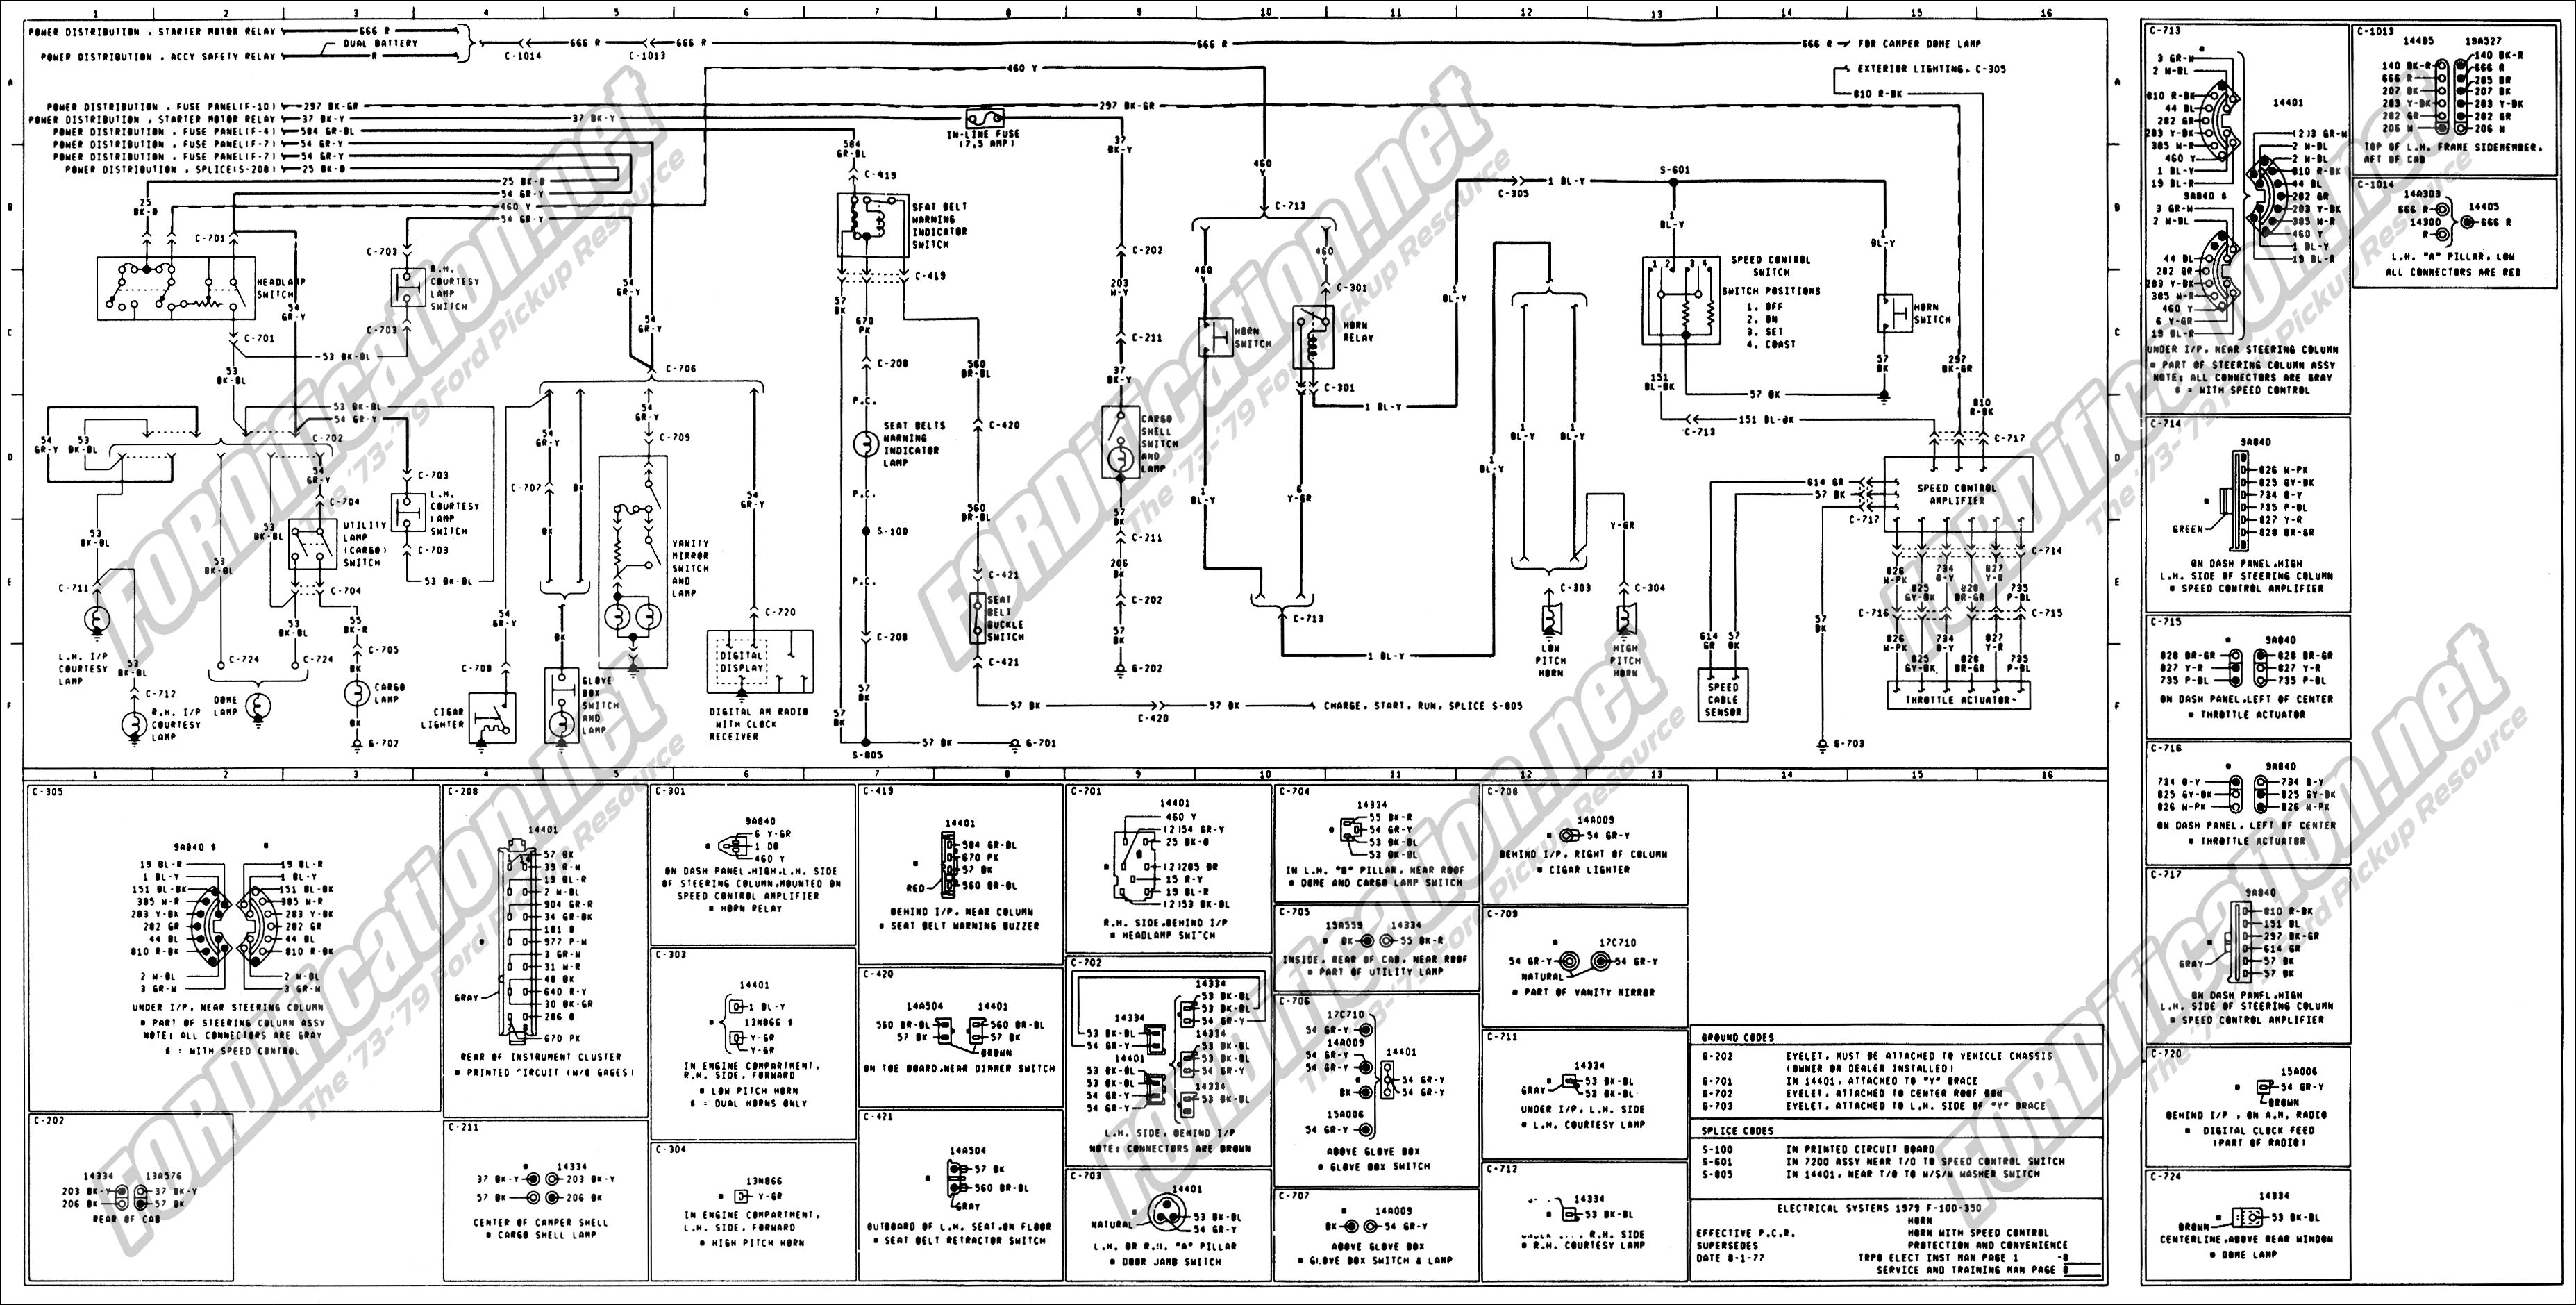 wiring_79master_8of9 1973 1979 ford truck wiring diagrams & schematics fordification net wiring diagrams for ford trucks at virtualis.co